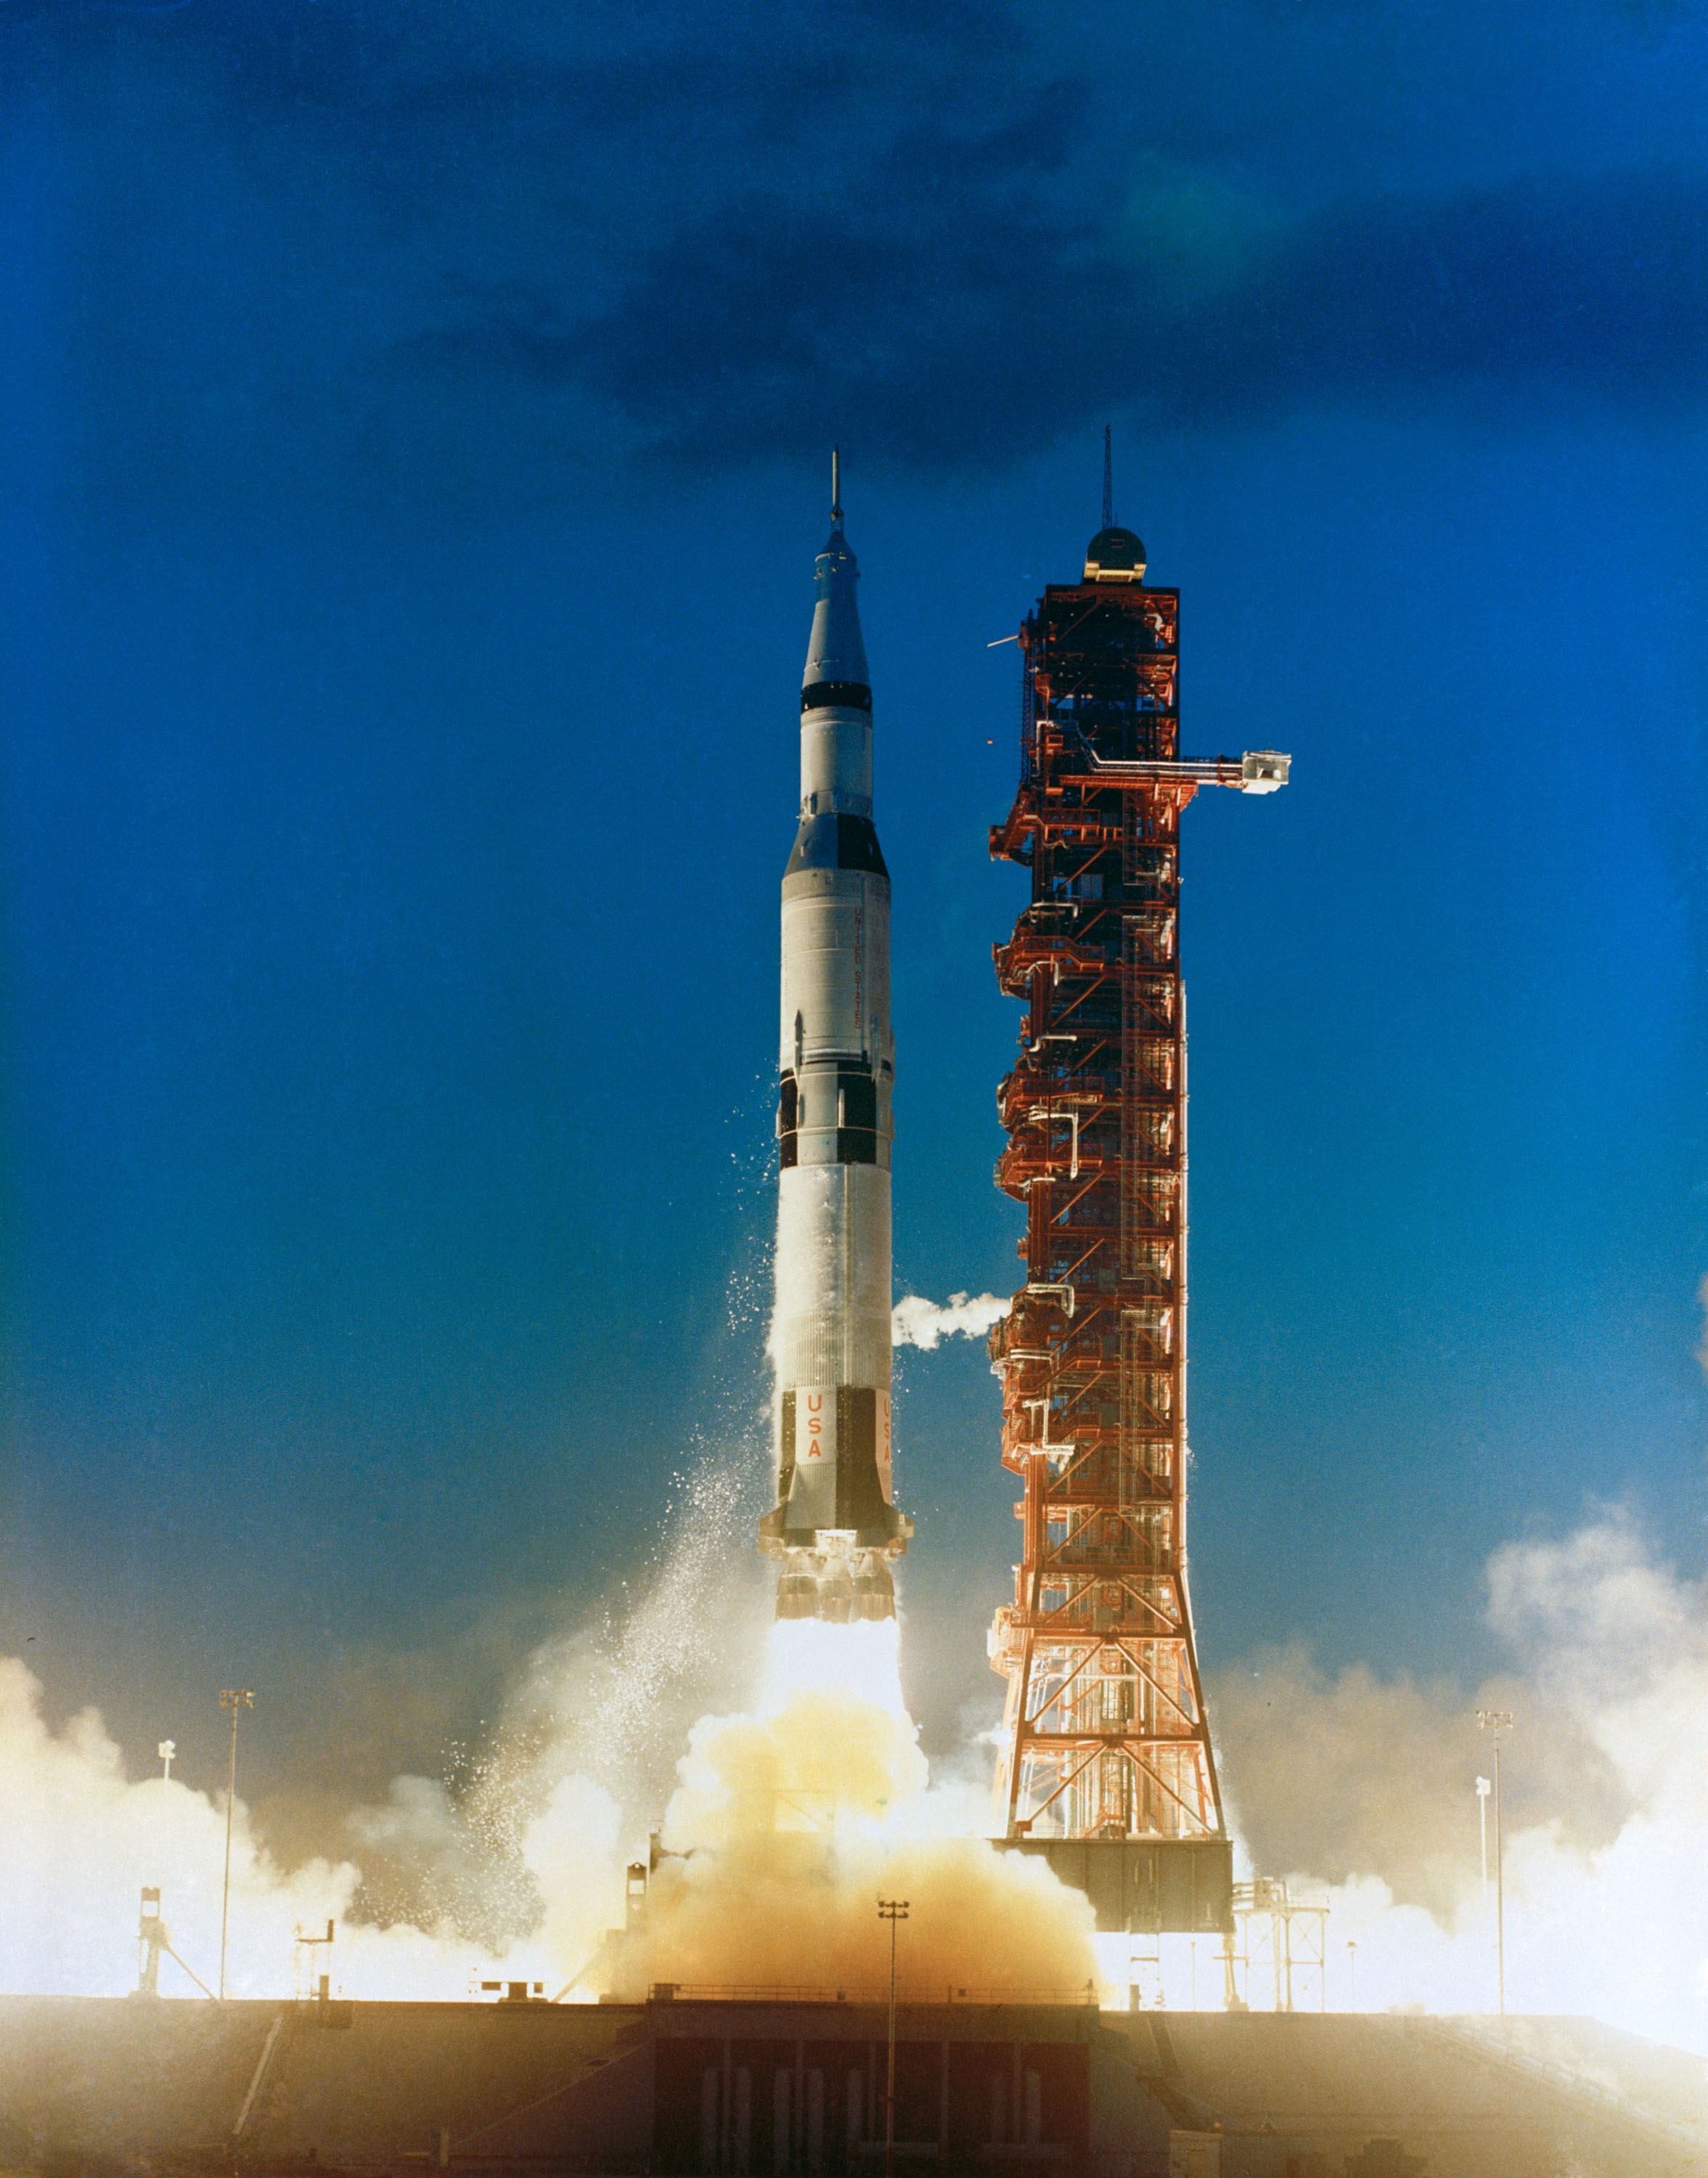 apollo 5 spacecraft - photo #17